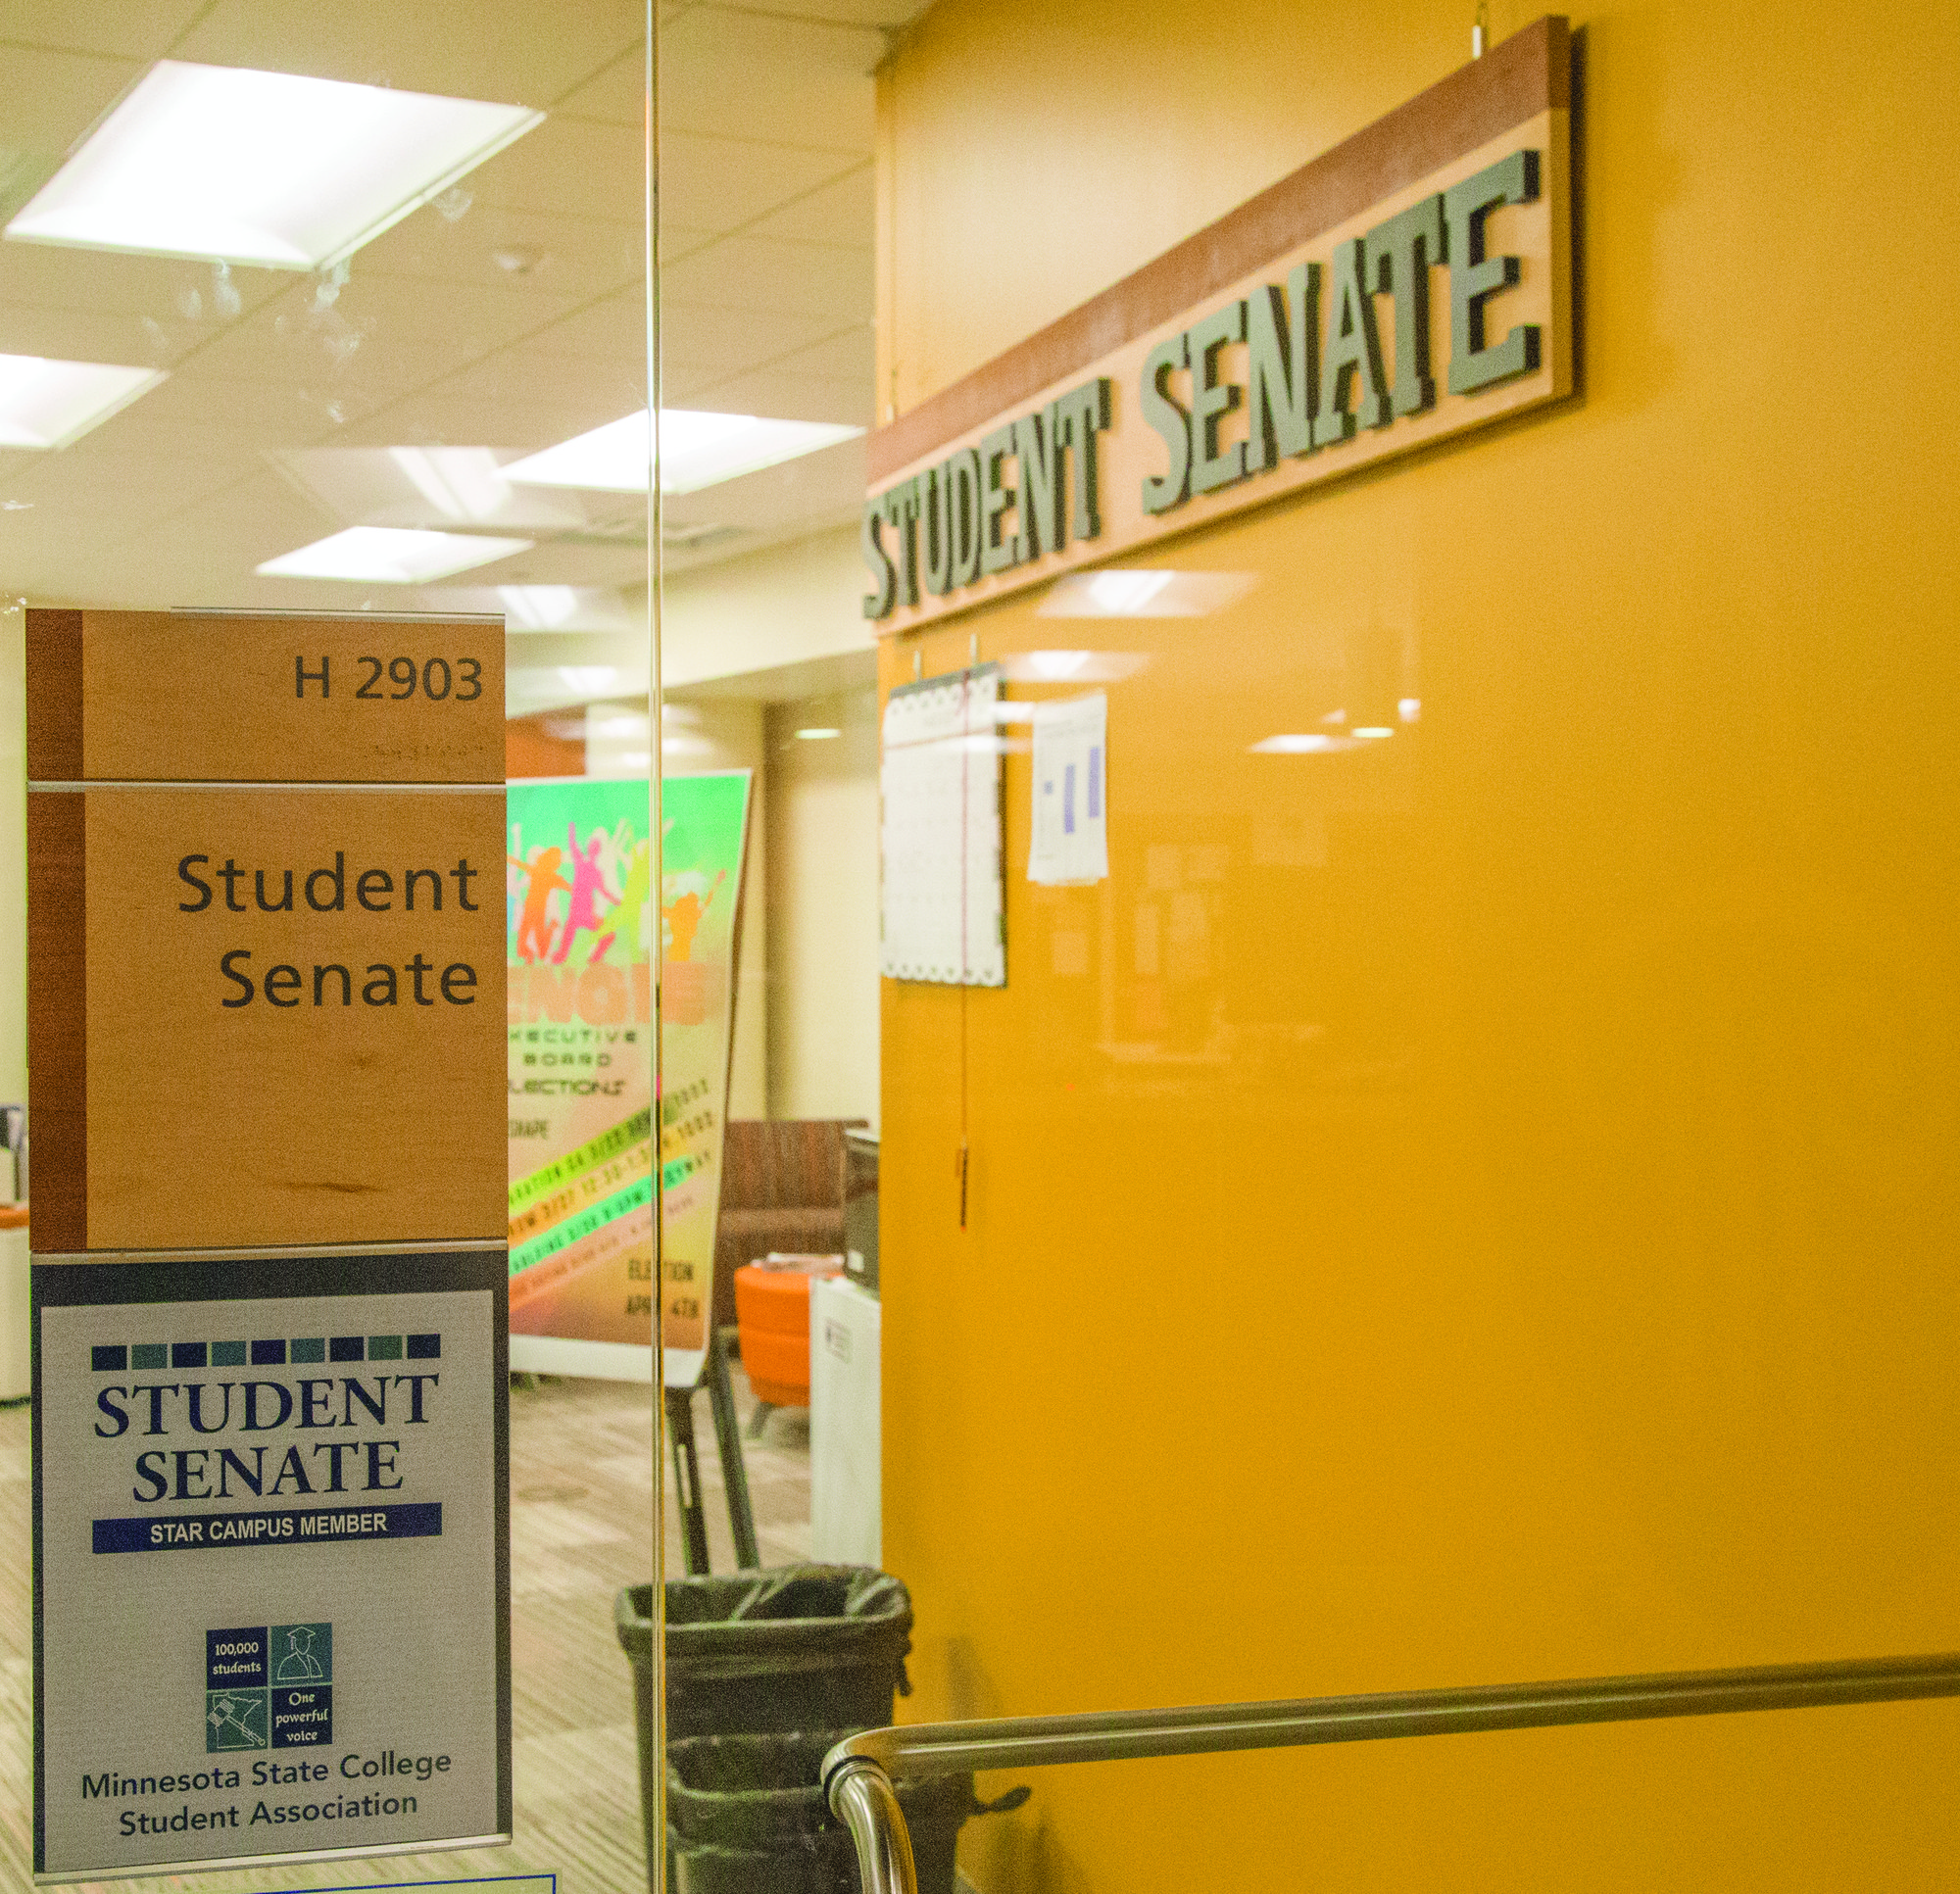 Student Senate elections cover-up worse than crime